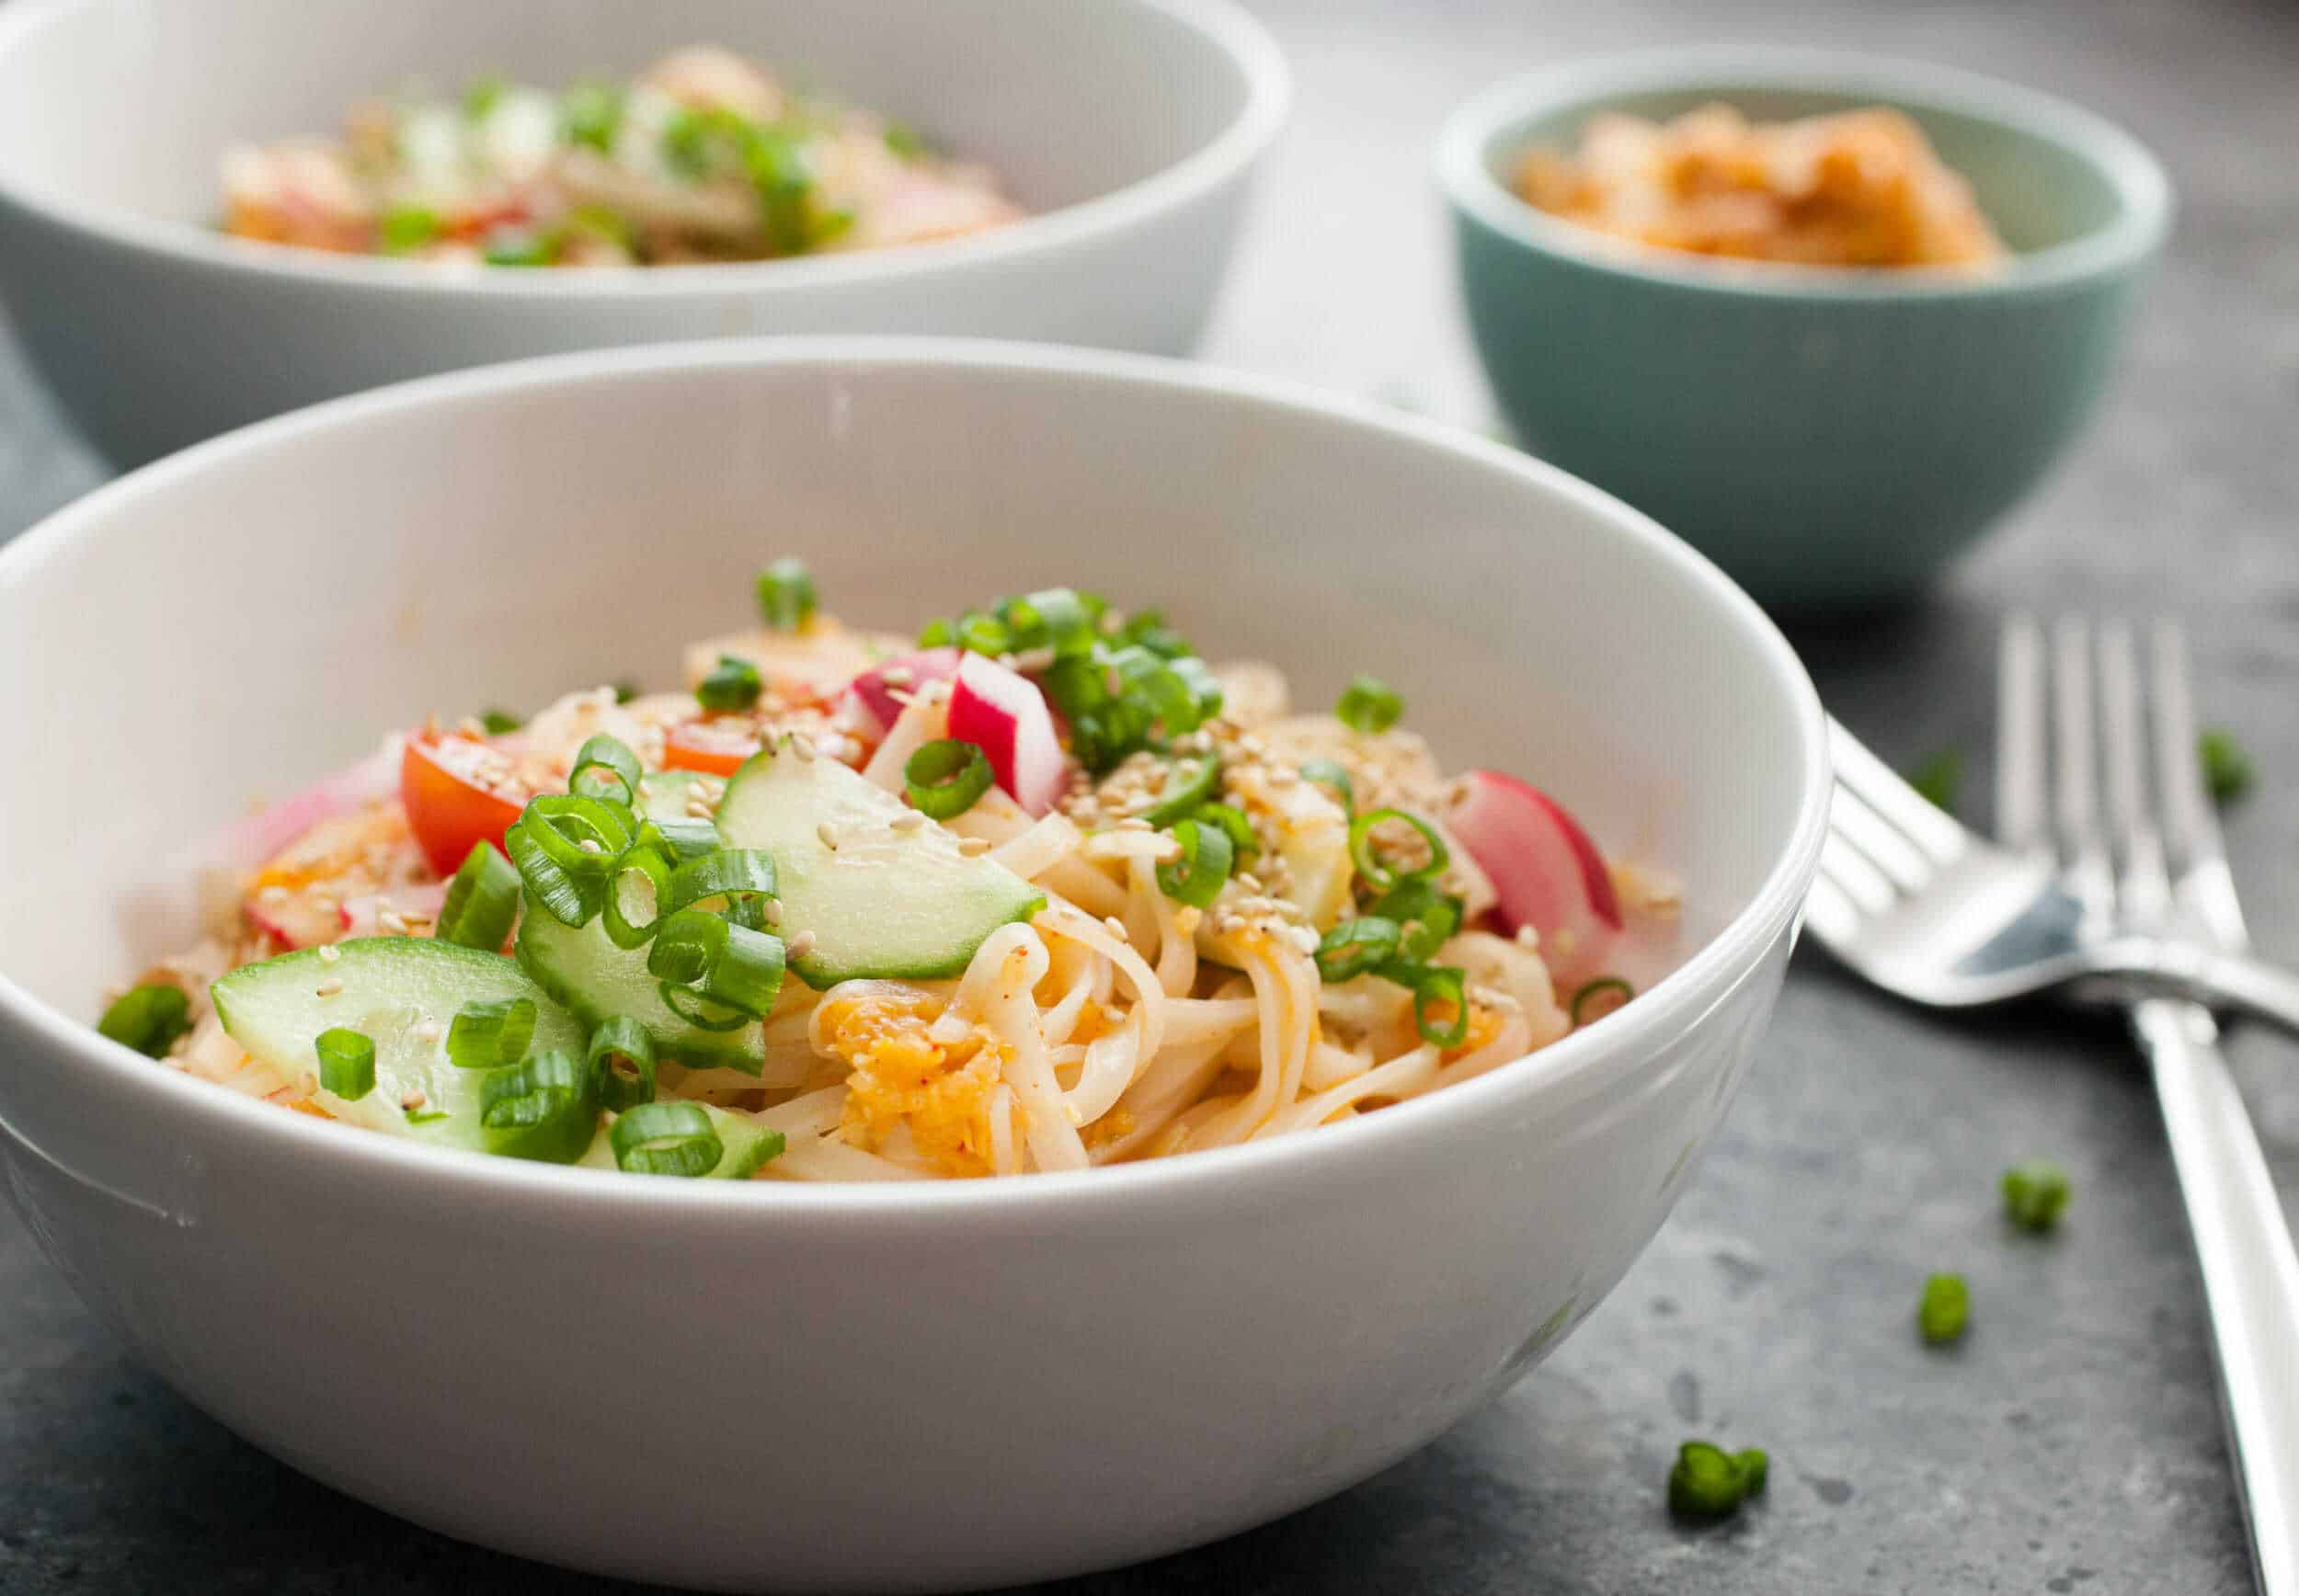 Easy Kimchi Noodles: These noodles are surprisingly flavorful for how easy they are! The key is a quick kimchi mix packed with orange zest and just enough spice! This is a great light dinner option or also good for weekday work lunches! Better on day two! | macheesmo.com